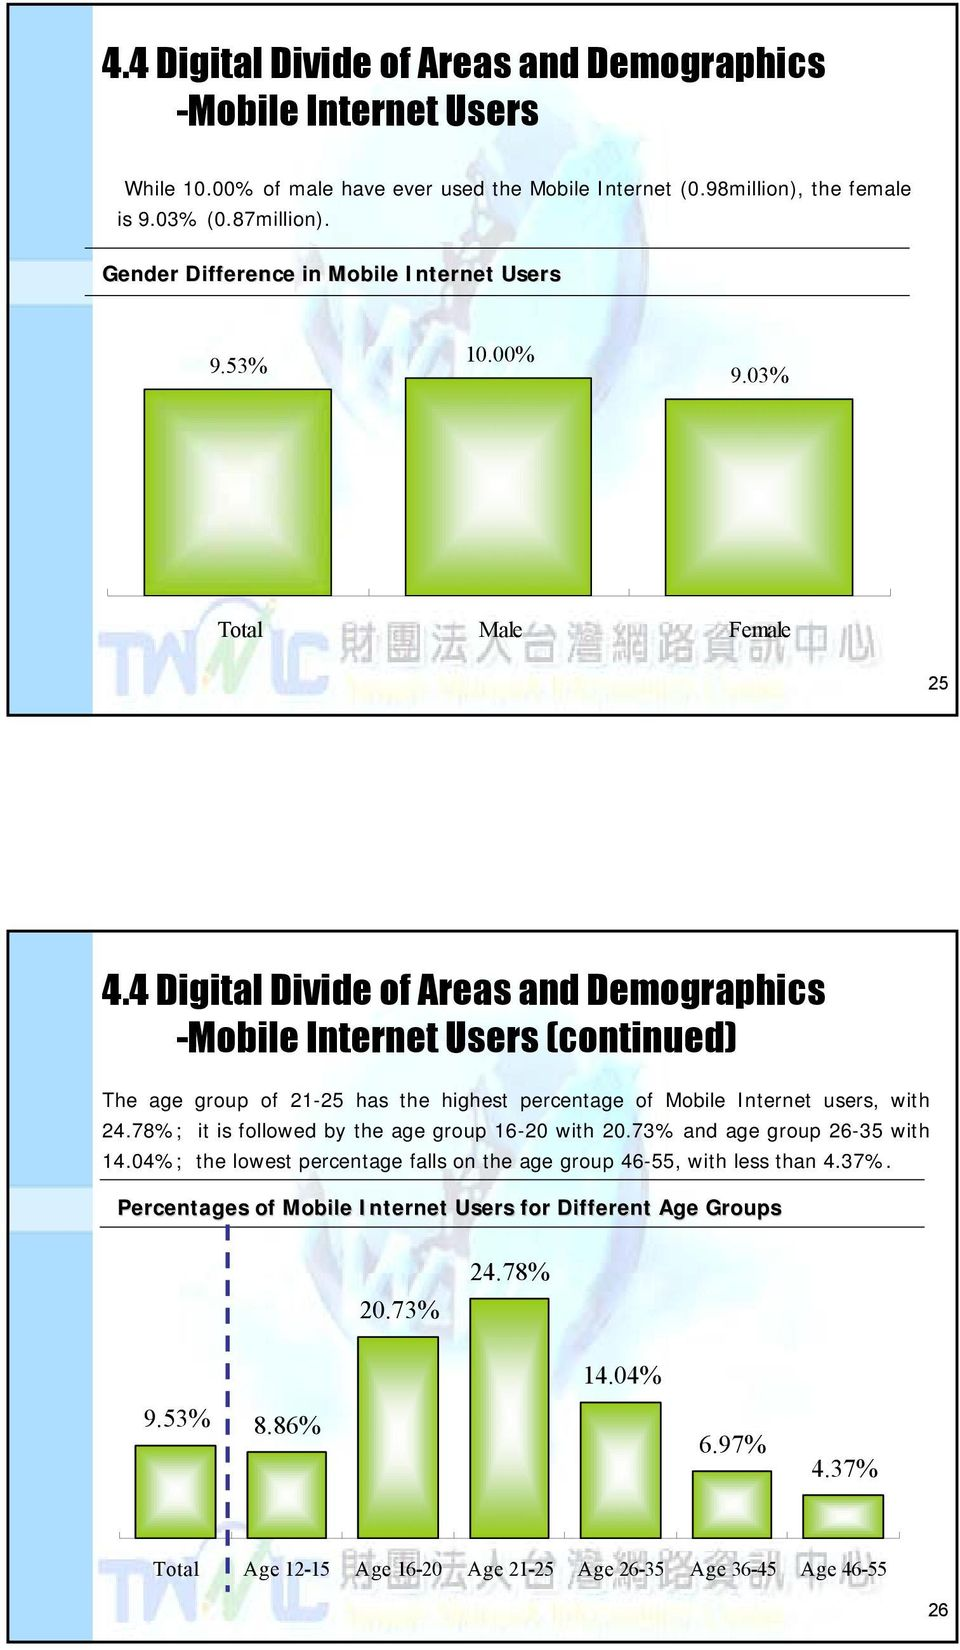 4 Digital Divide of Areas and Demographics -Mobile Internet Users (continued) The age group of 21-25 has the highest percentage of Mobile Internet users, with 24.